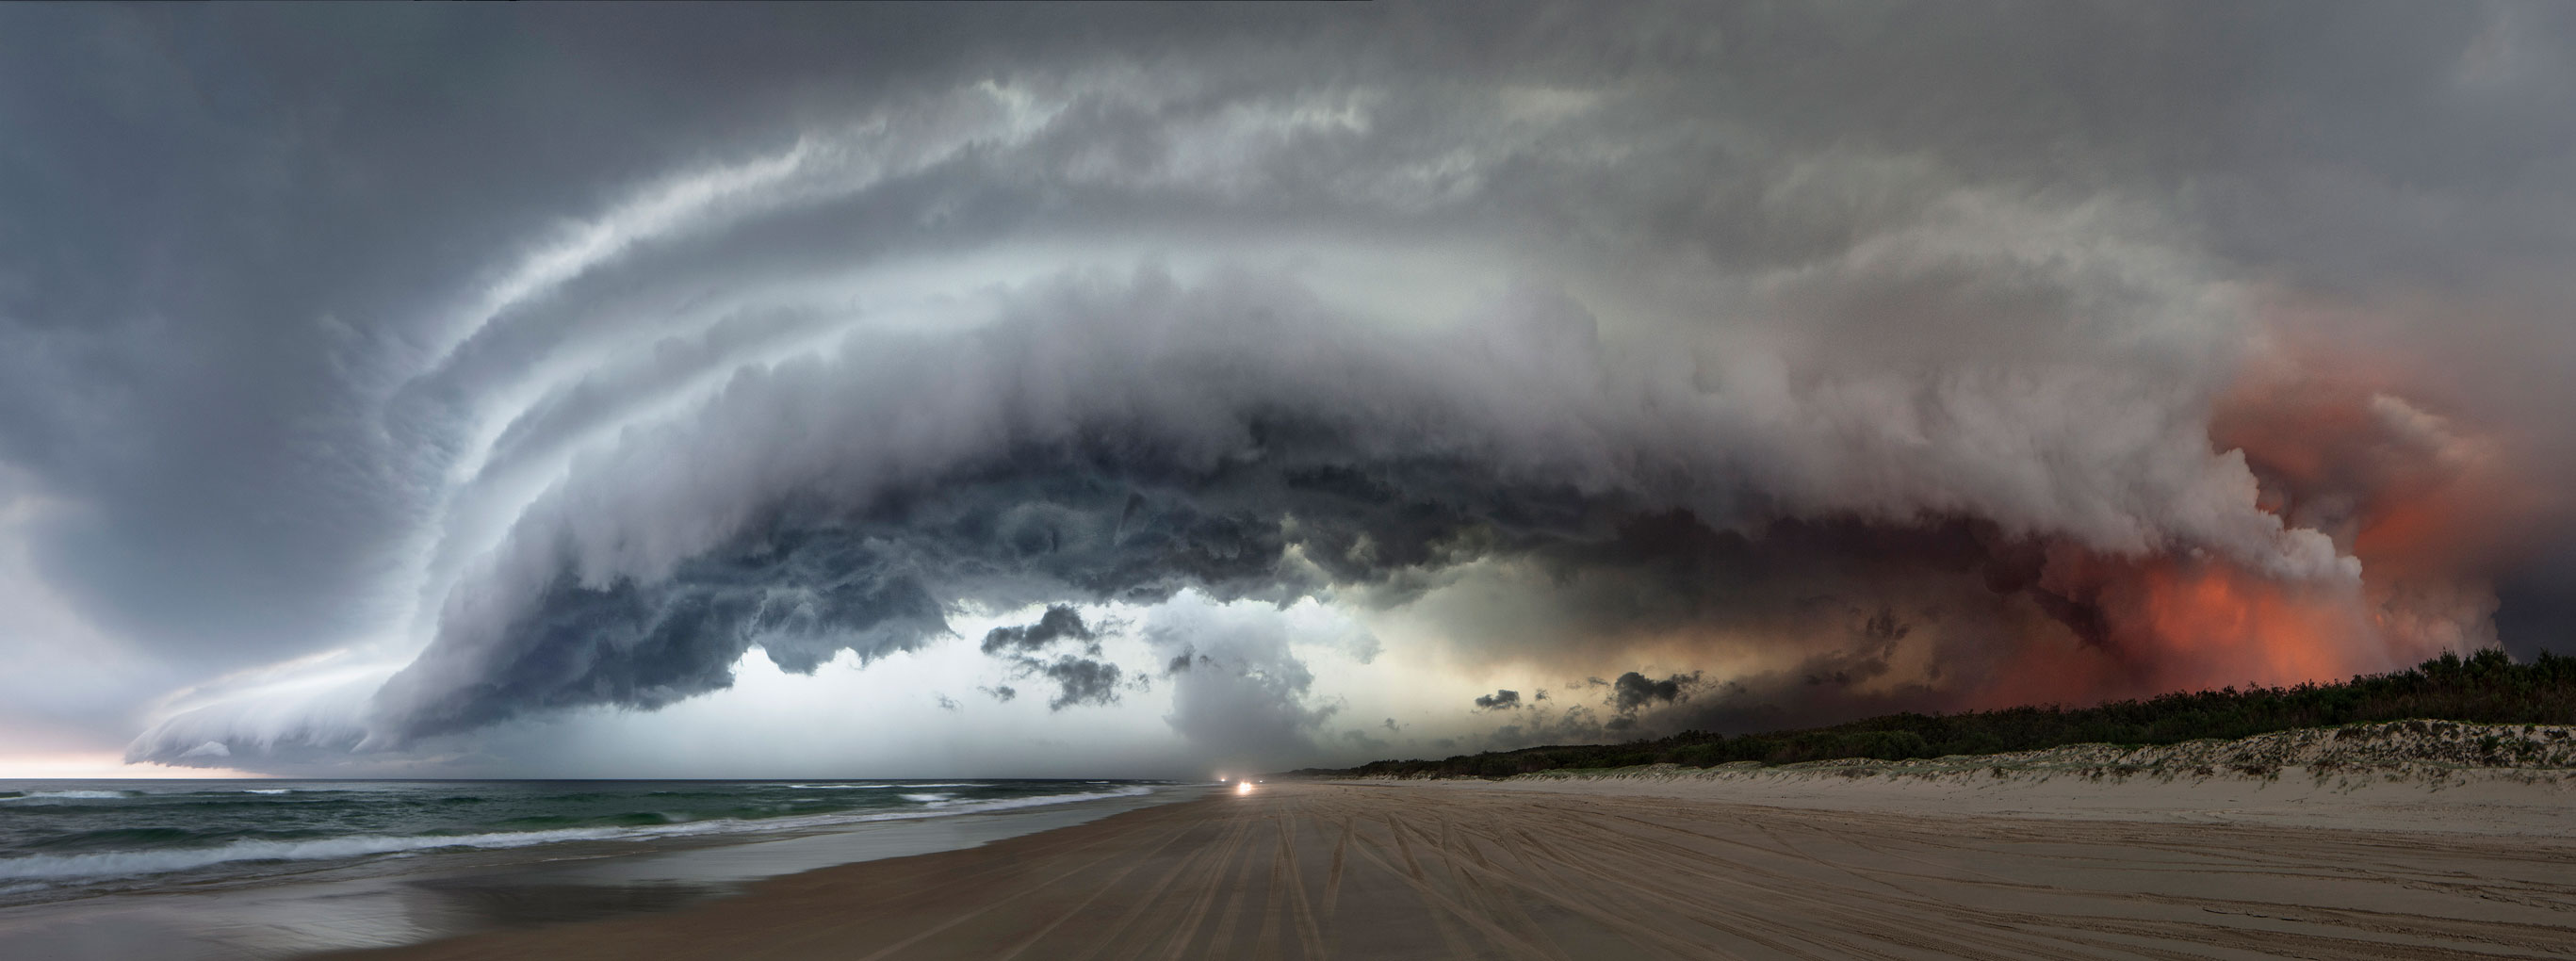 North Stradbroke, 100cm x 284cm, digital pigment print on cotton rag, edition of 7, 2014